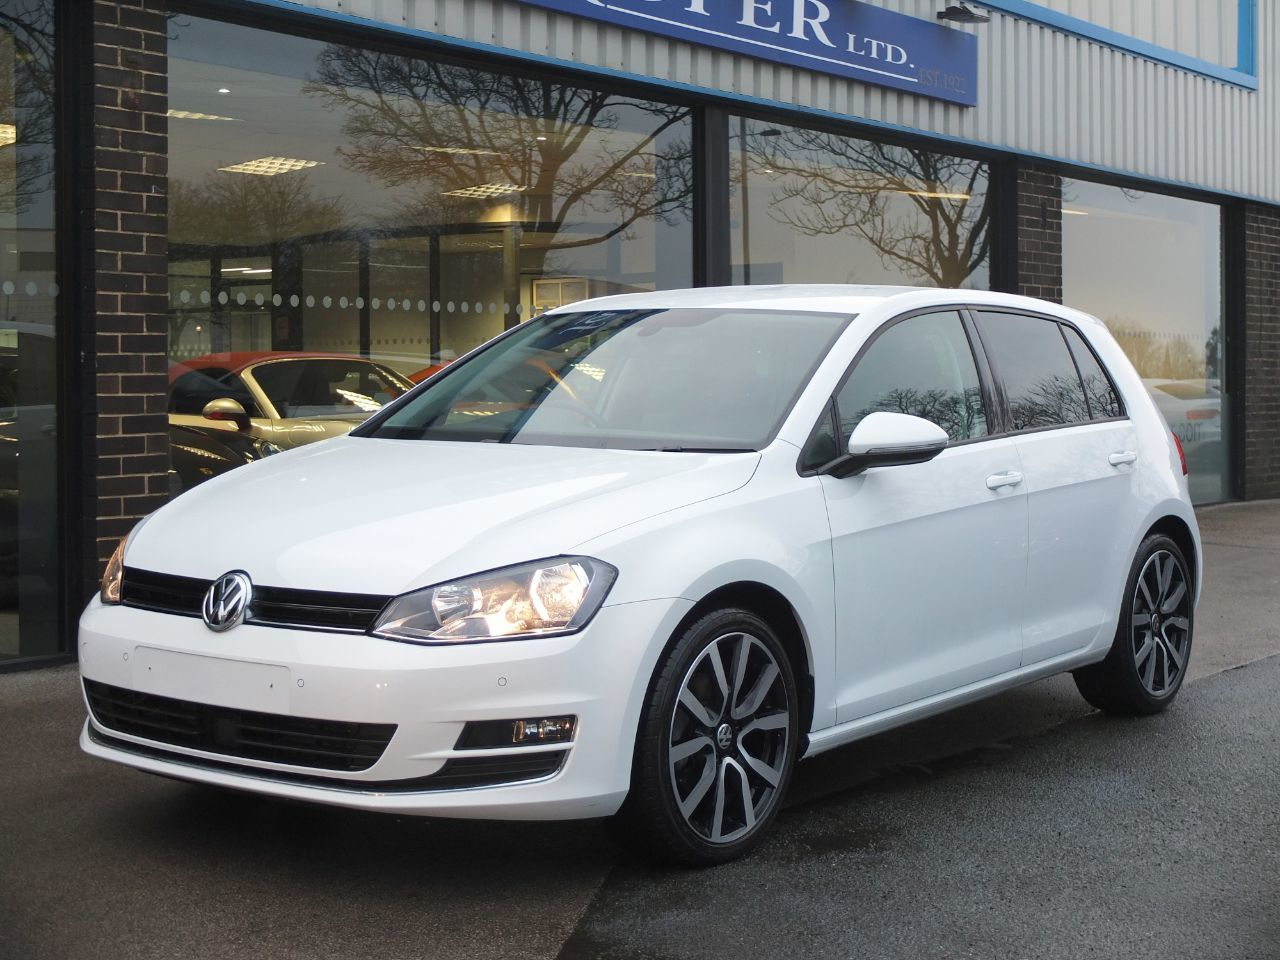 Volkswagen Golf 2.0 TDI GT 5 door 150ps DSG Hatchback Diesel Pure WhiteVolkswagen Golf 2.0 TDI GT 5 door 150ps DSG Hatchback Diesel Pure White at fa Roper Ltd Bradford